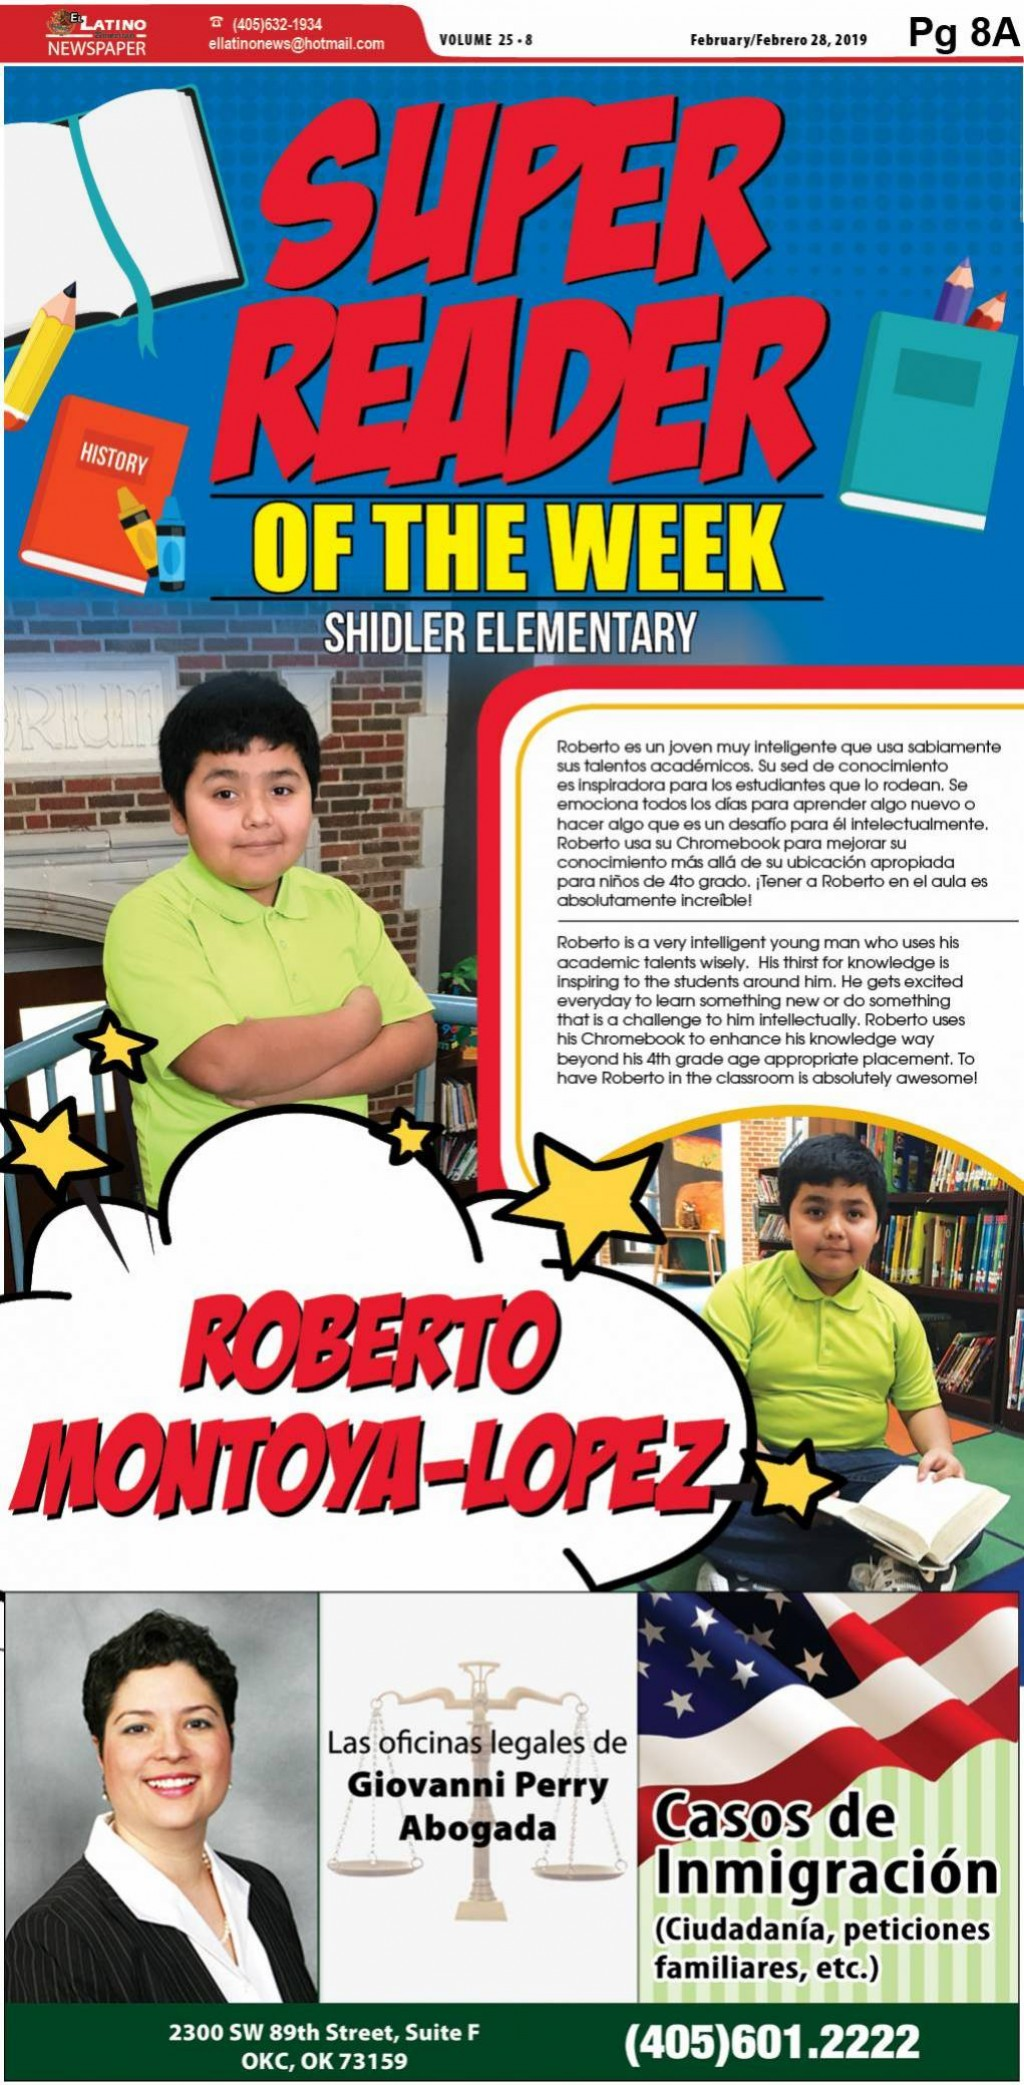 Super Reader of the Week: Roberto Montoya-Lopez